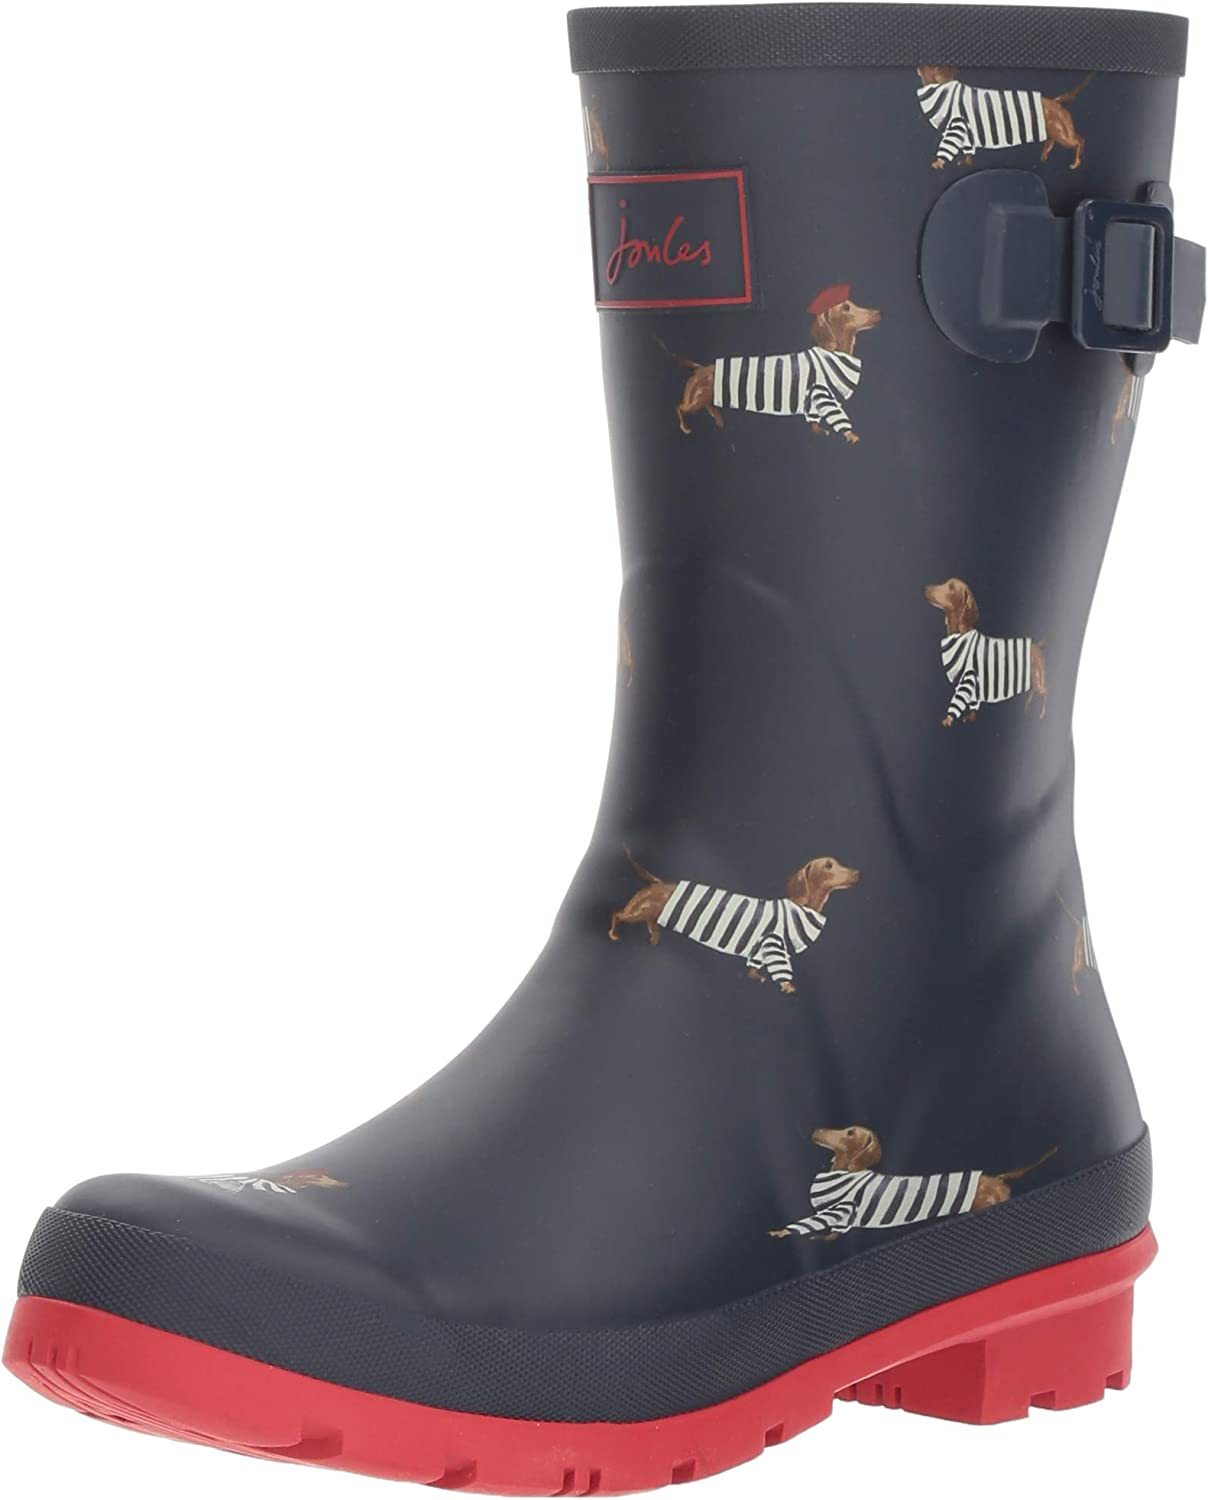 Joules Women's Molly Welly Rain